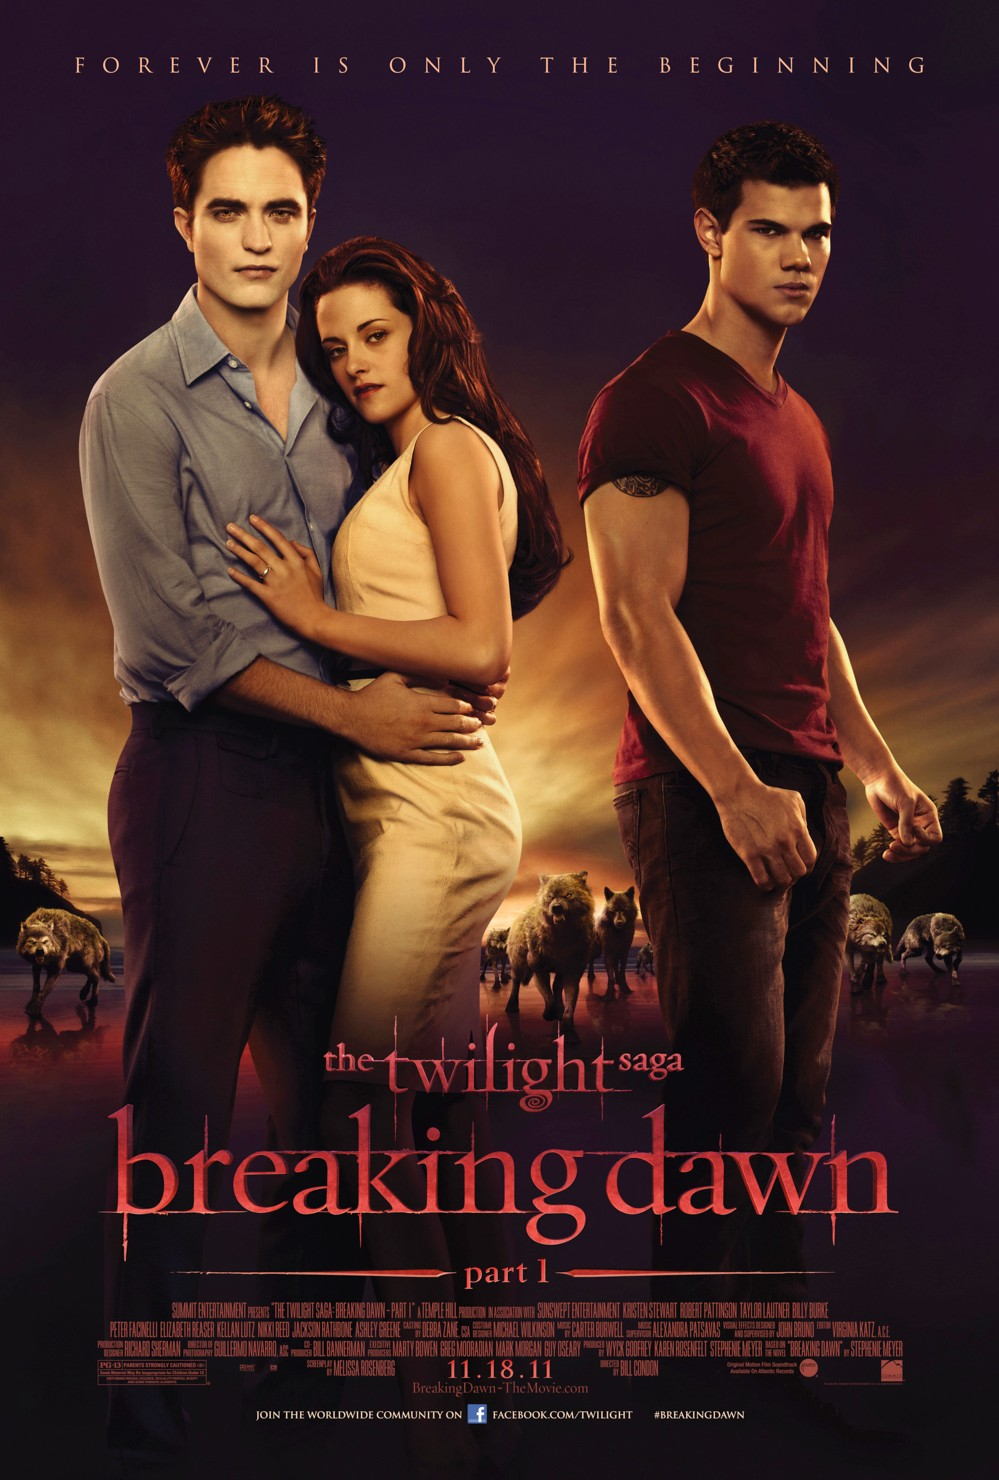 TWILIGHT NEW MOON Poster Male Cast Members in Woods New